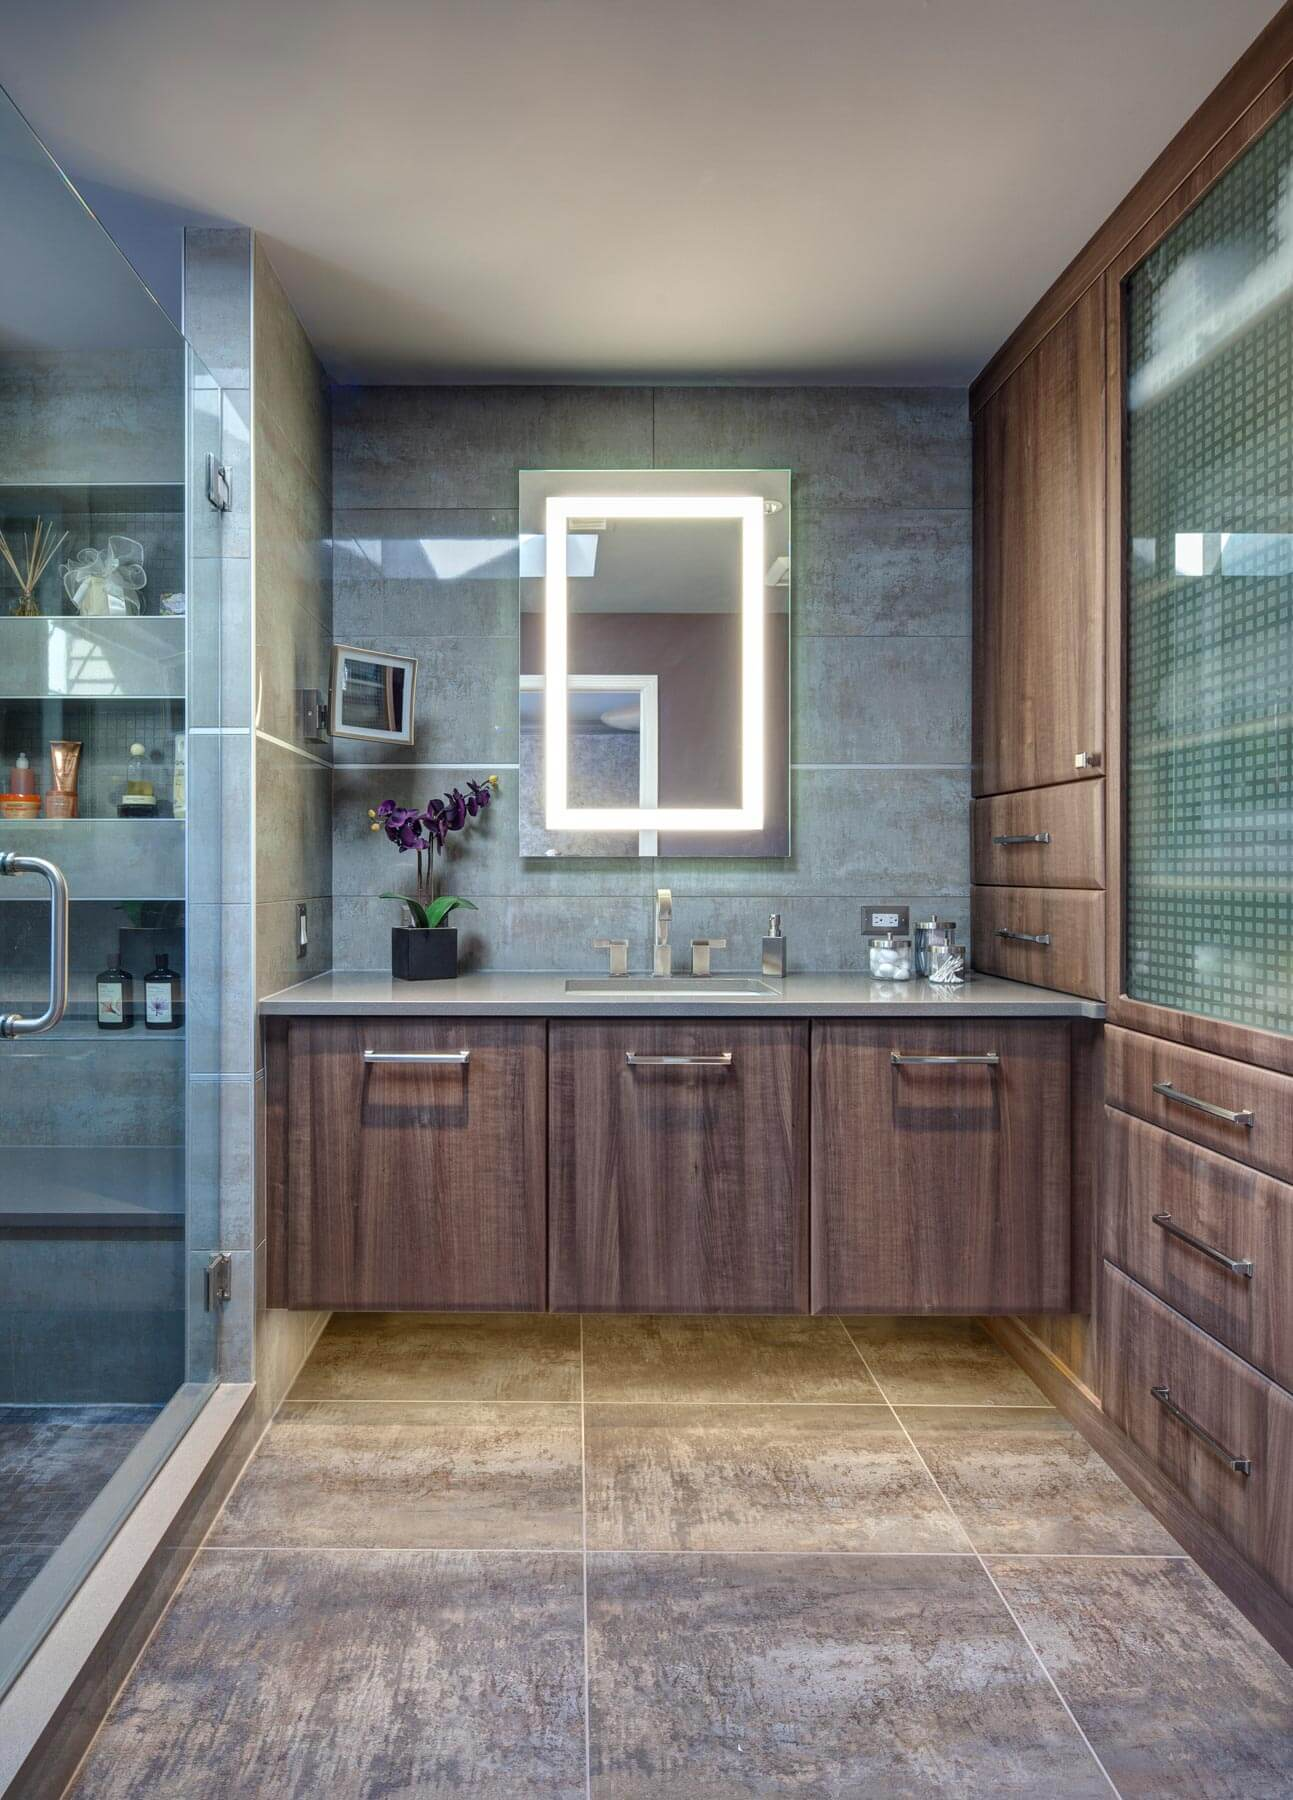 Bathroom features large format natural colored materials and a vanity mirror with internal lighting. A palate of soothing brown and blues were utilized throughout this newly remodeled master bath, while functionality was added via an array of shower shelving and cabinetry.